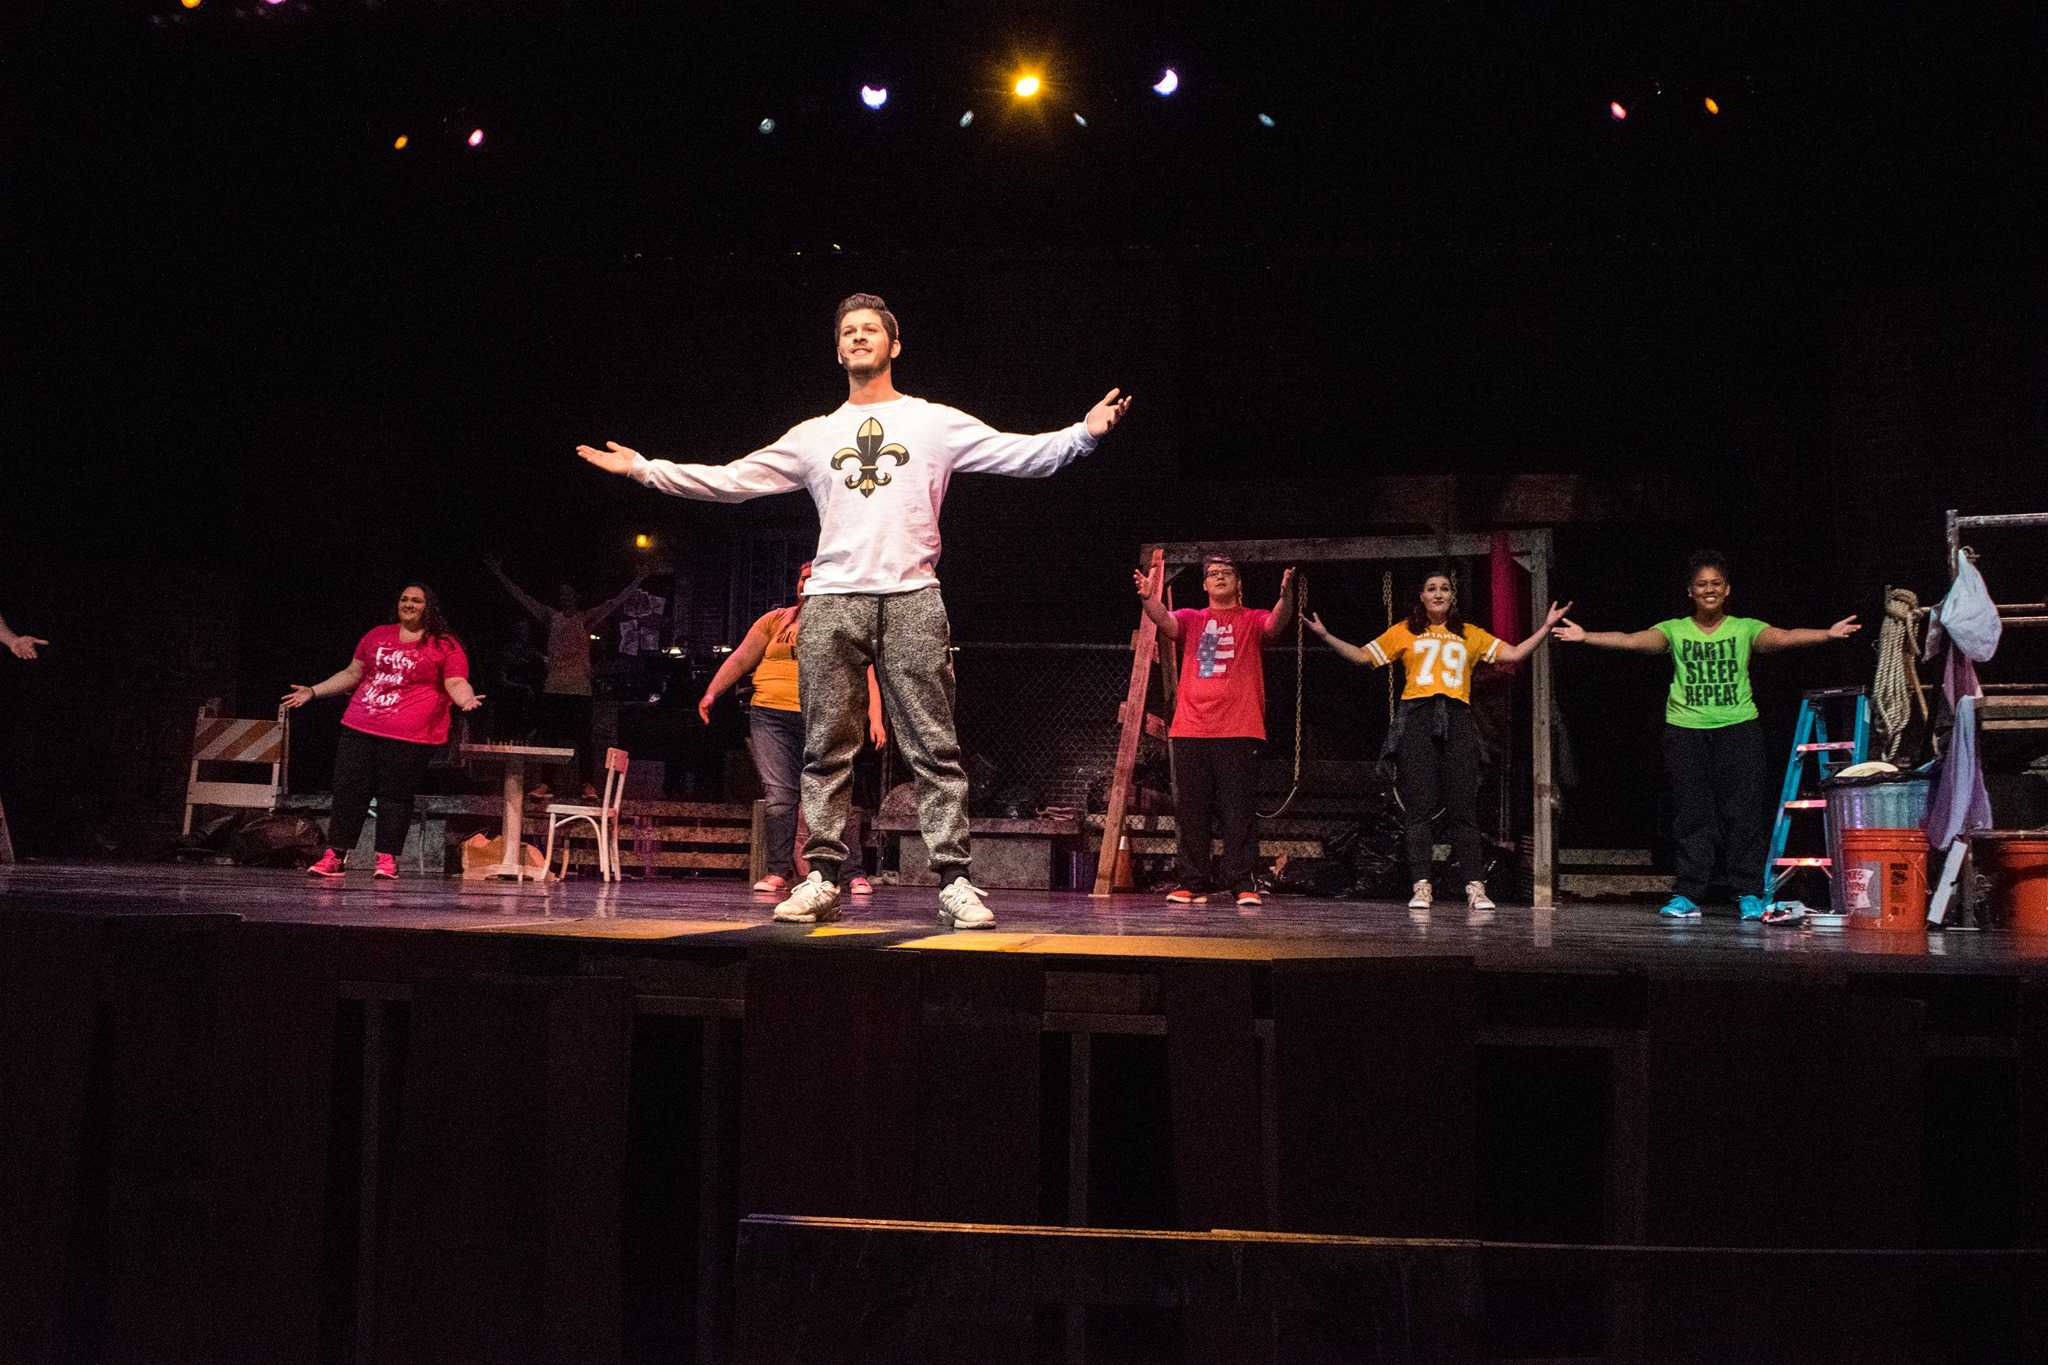 The roles in Godspell were Jesus Christ, John the Baptist and the disciples of Jesus.